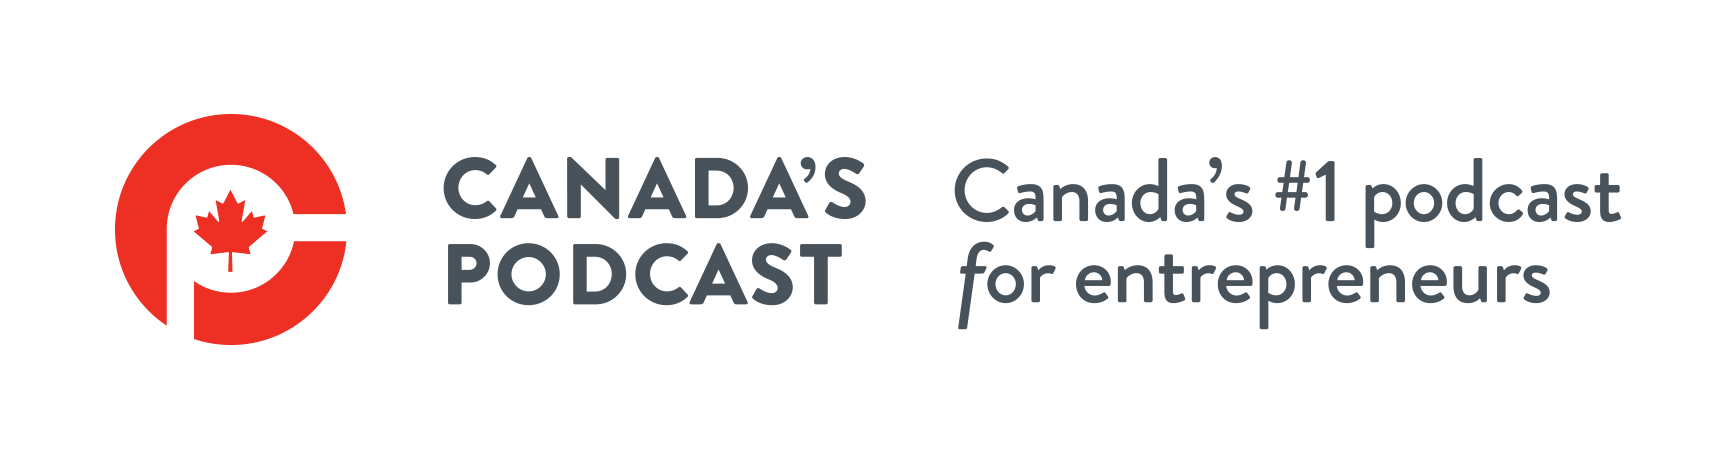 Canada's Podcast